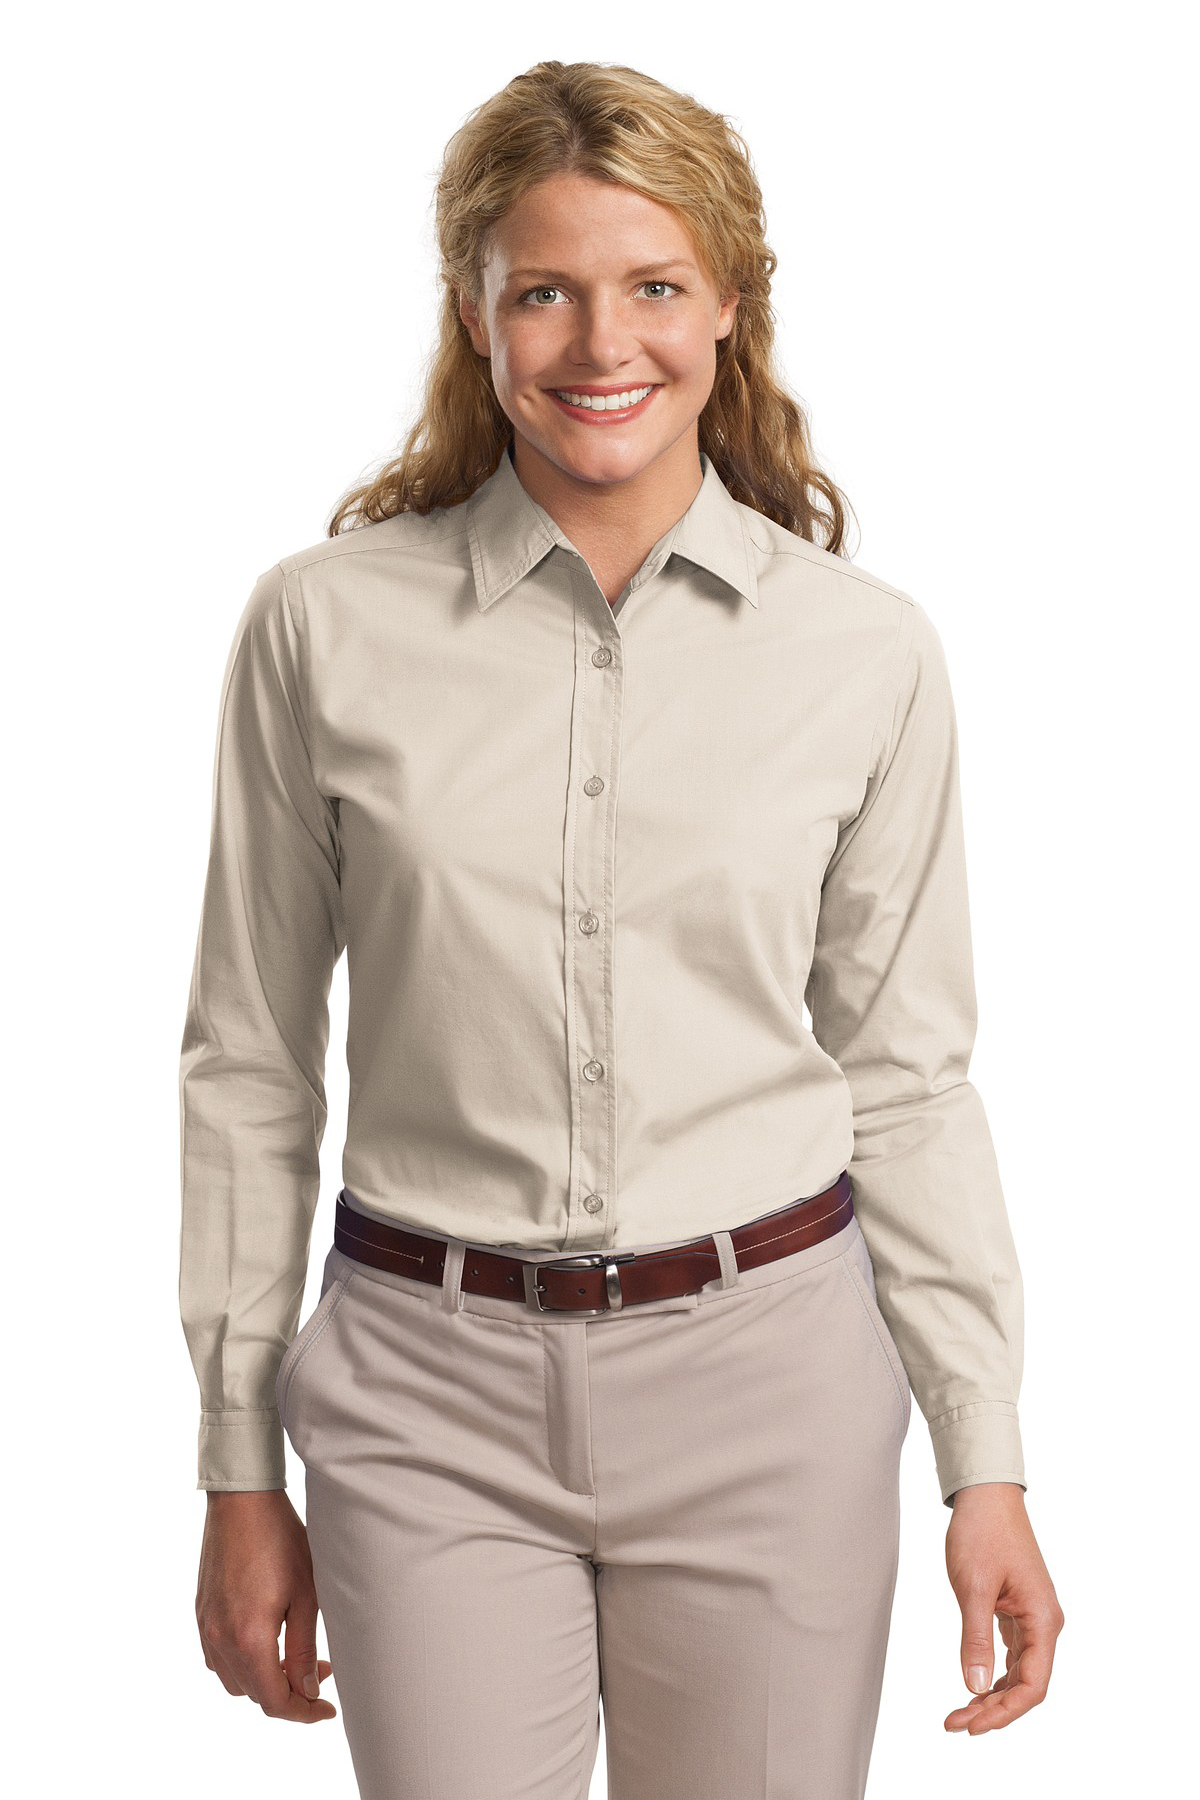 Woven-Shirts-Easy-Care-6